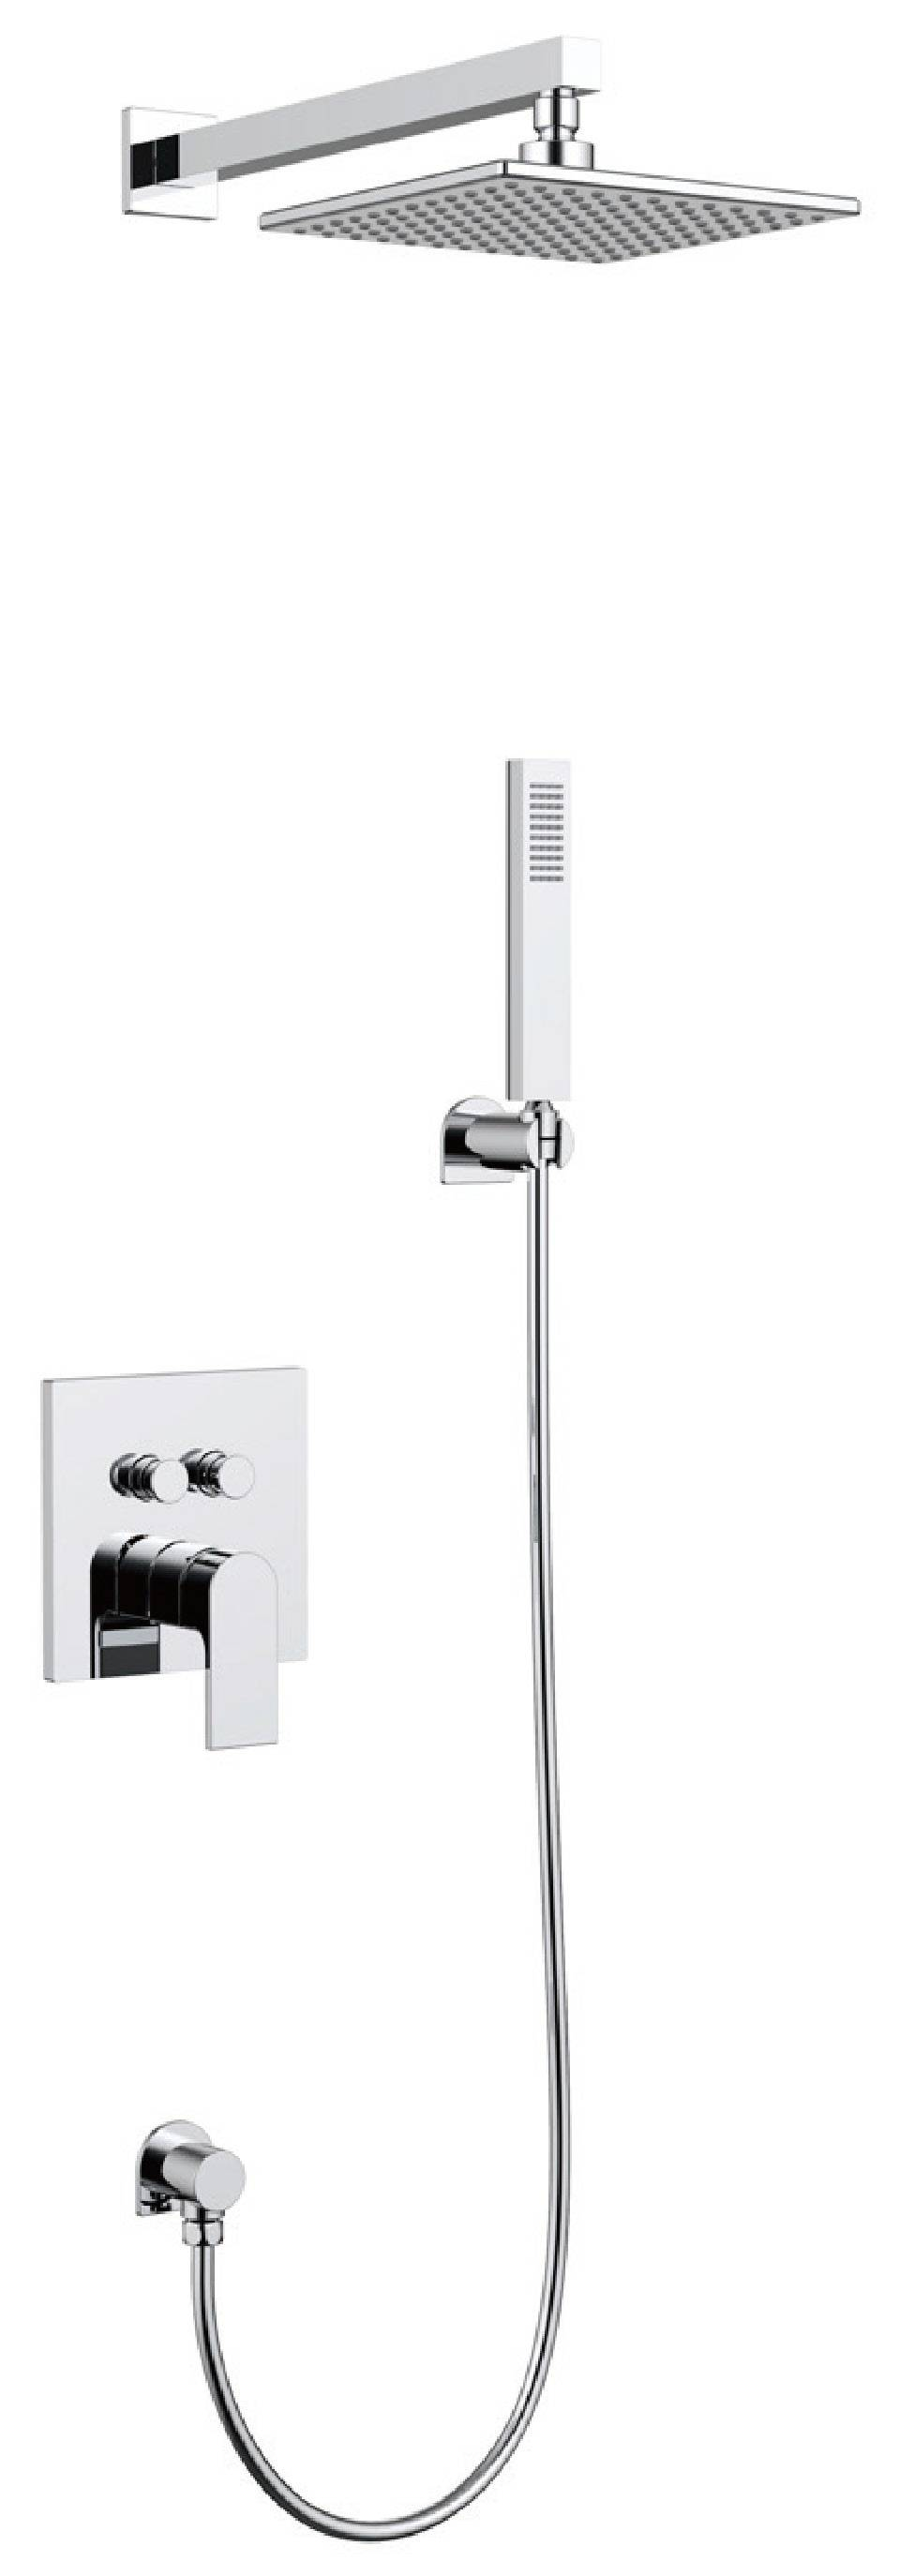 Modern chrome brass wall mounted bathroom concealed shower mixer